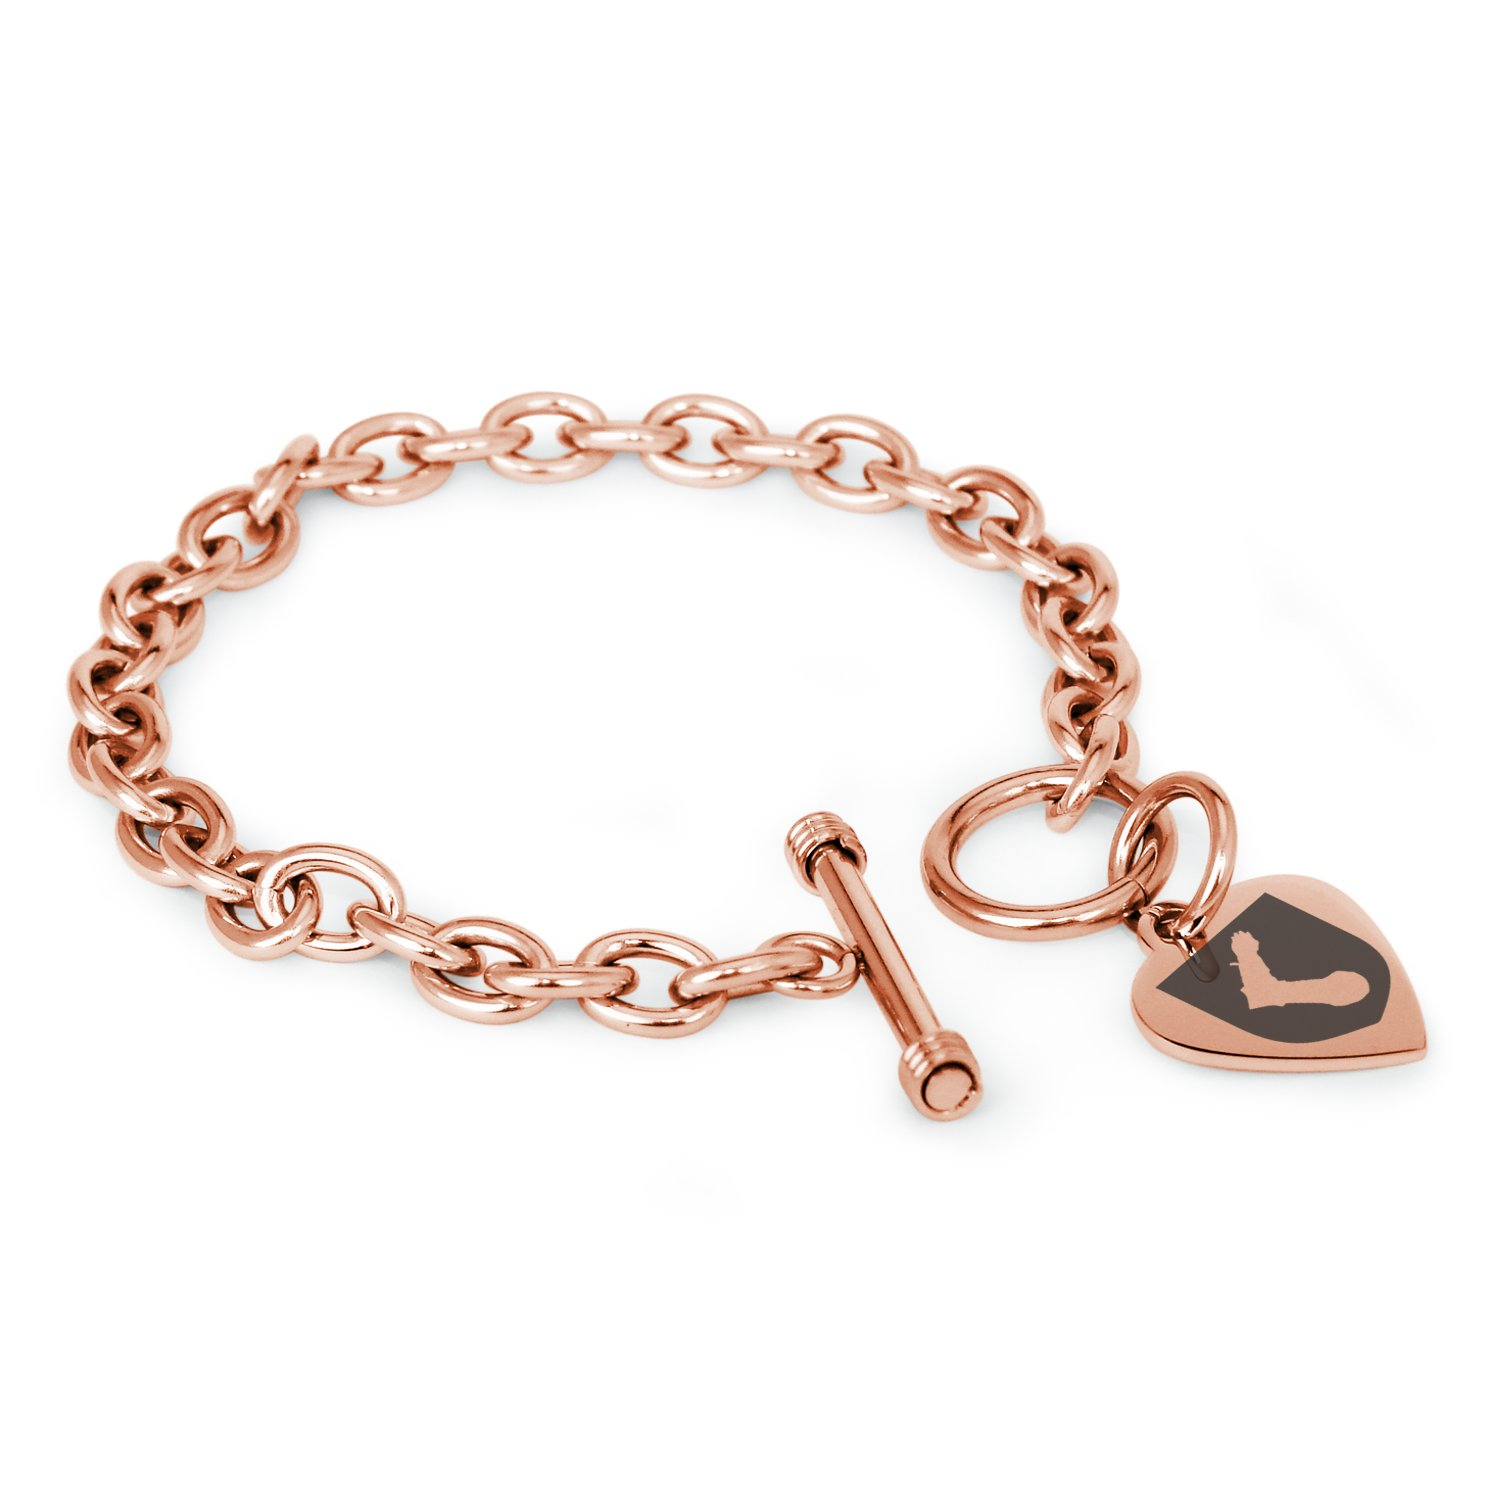 Tioneer Rose Gold Plated Stainless Steel Arm Armor Leadership Coat of Arms Shield Symbols Heart Charm, Bracelet Only